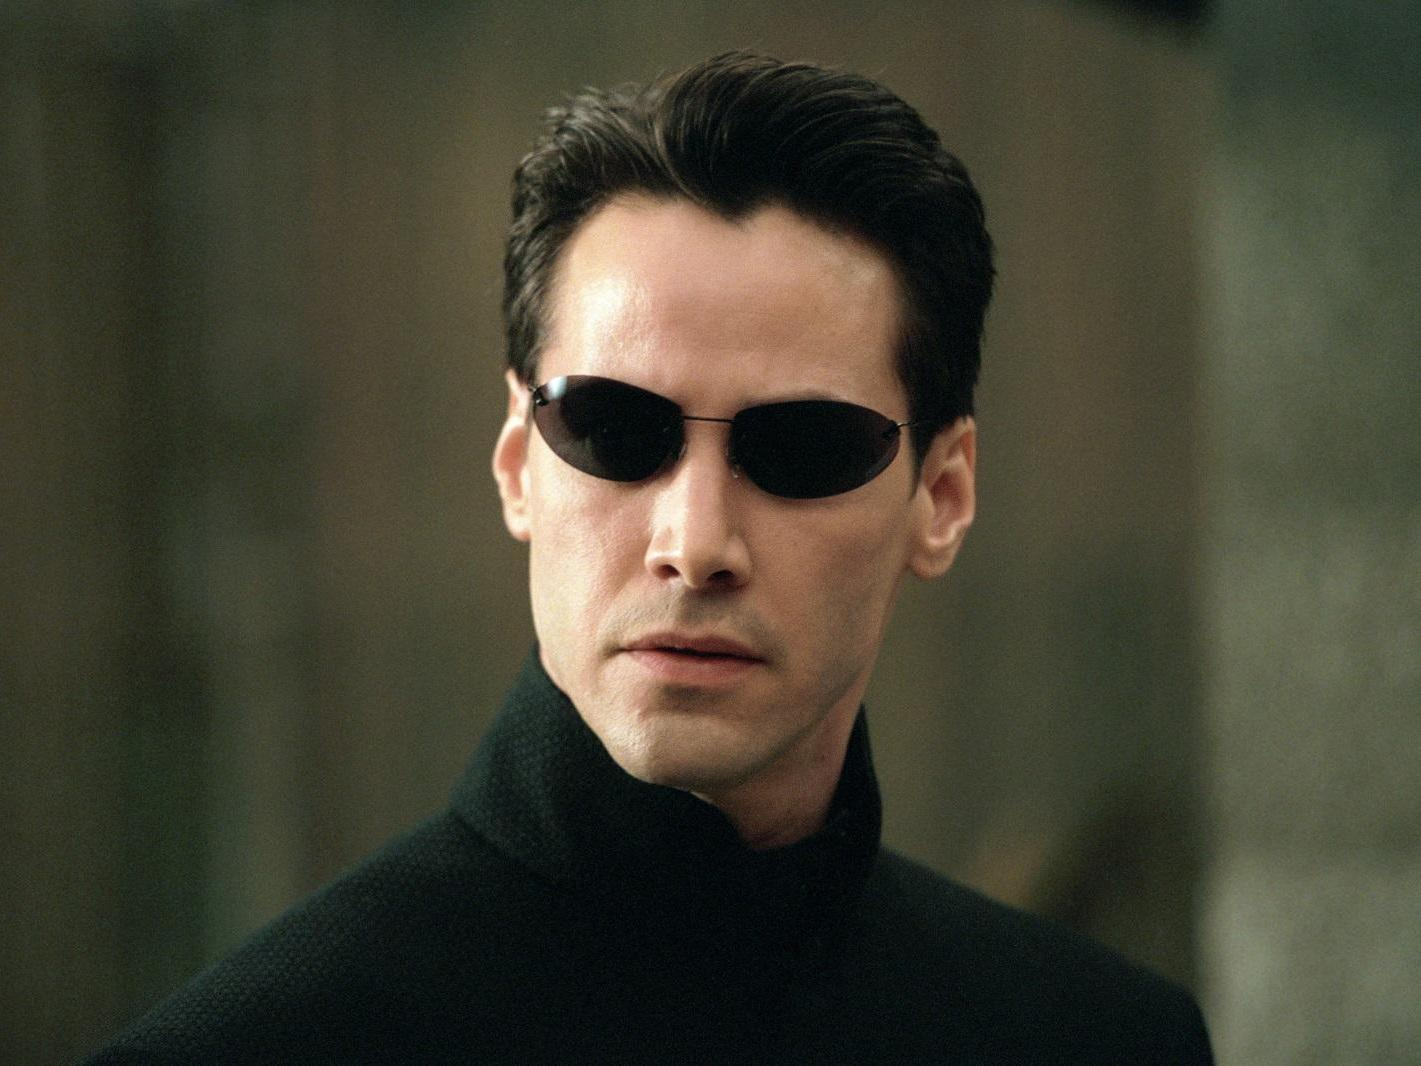 The Matrix 4: How will Keanu Reeves return as Neo?